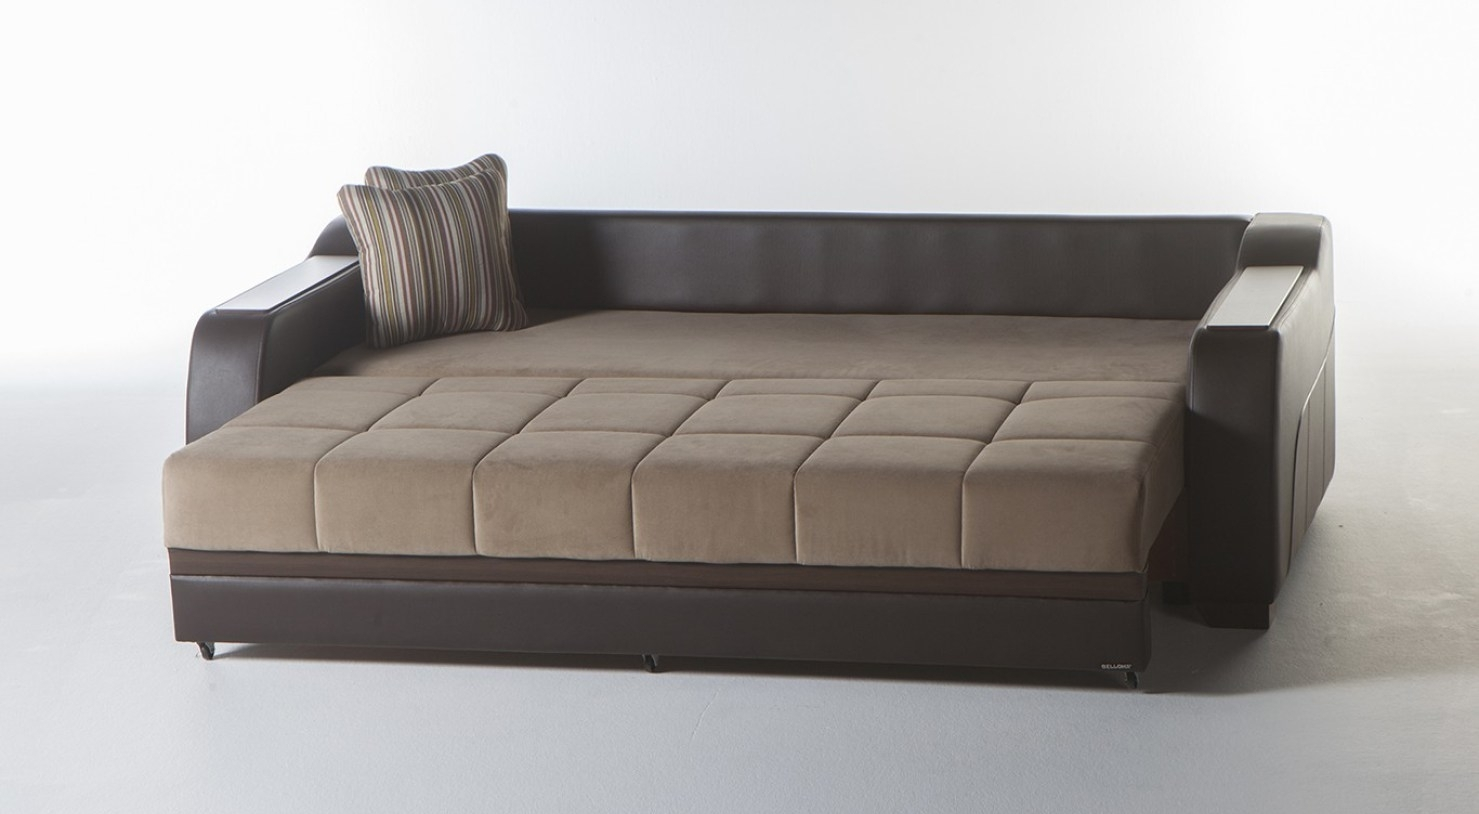 Hideaway Sofa Bed Philippines | Catosfera With Philippines Sectional Sofas (View 9 of 10)